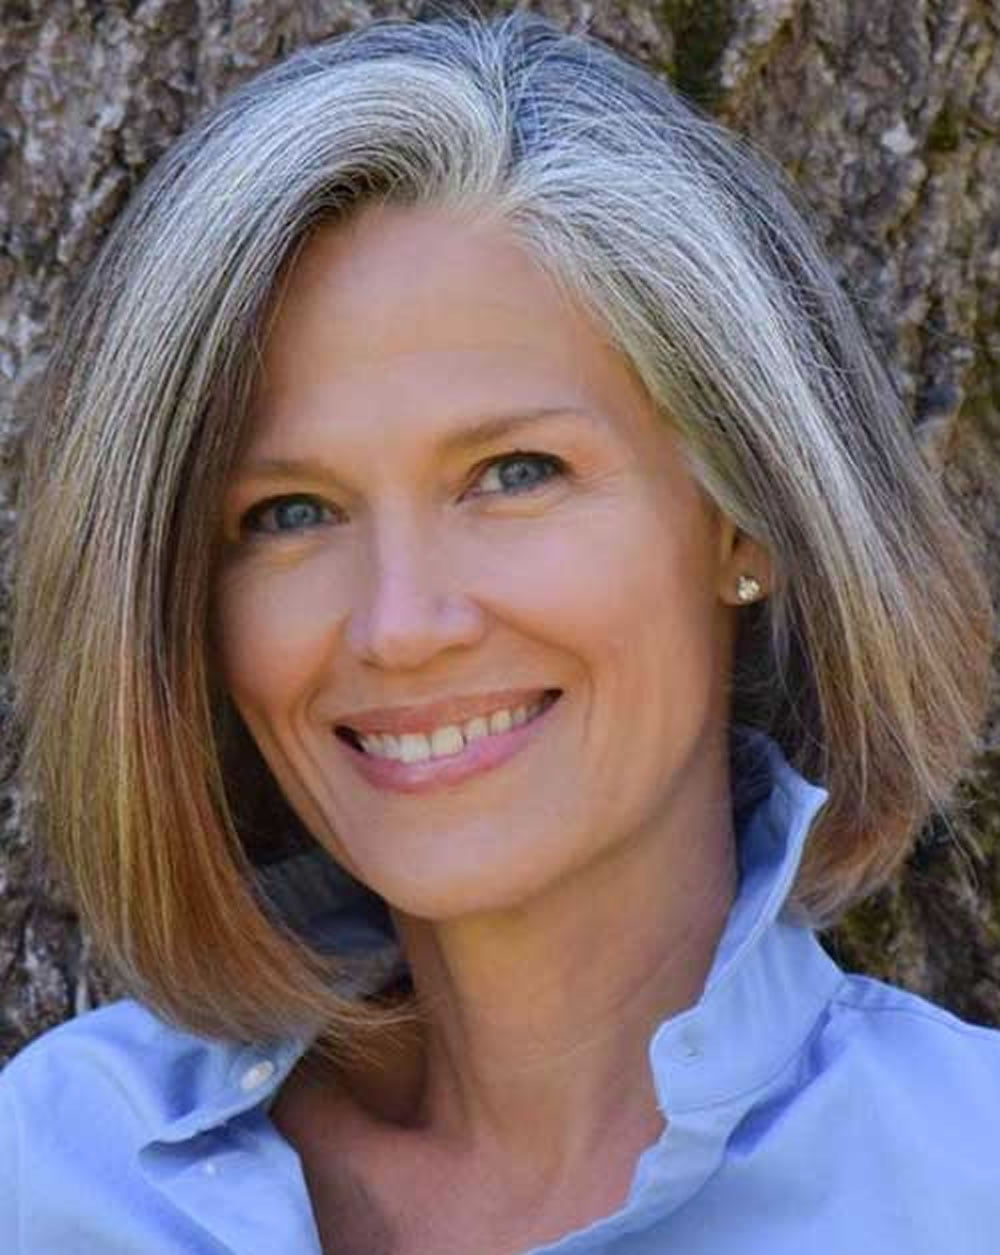 Hairstyles And Hair Colors For Older Women Over 50 To 60 Hairstyles